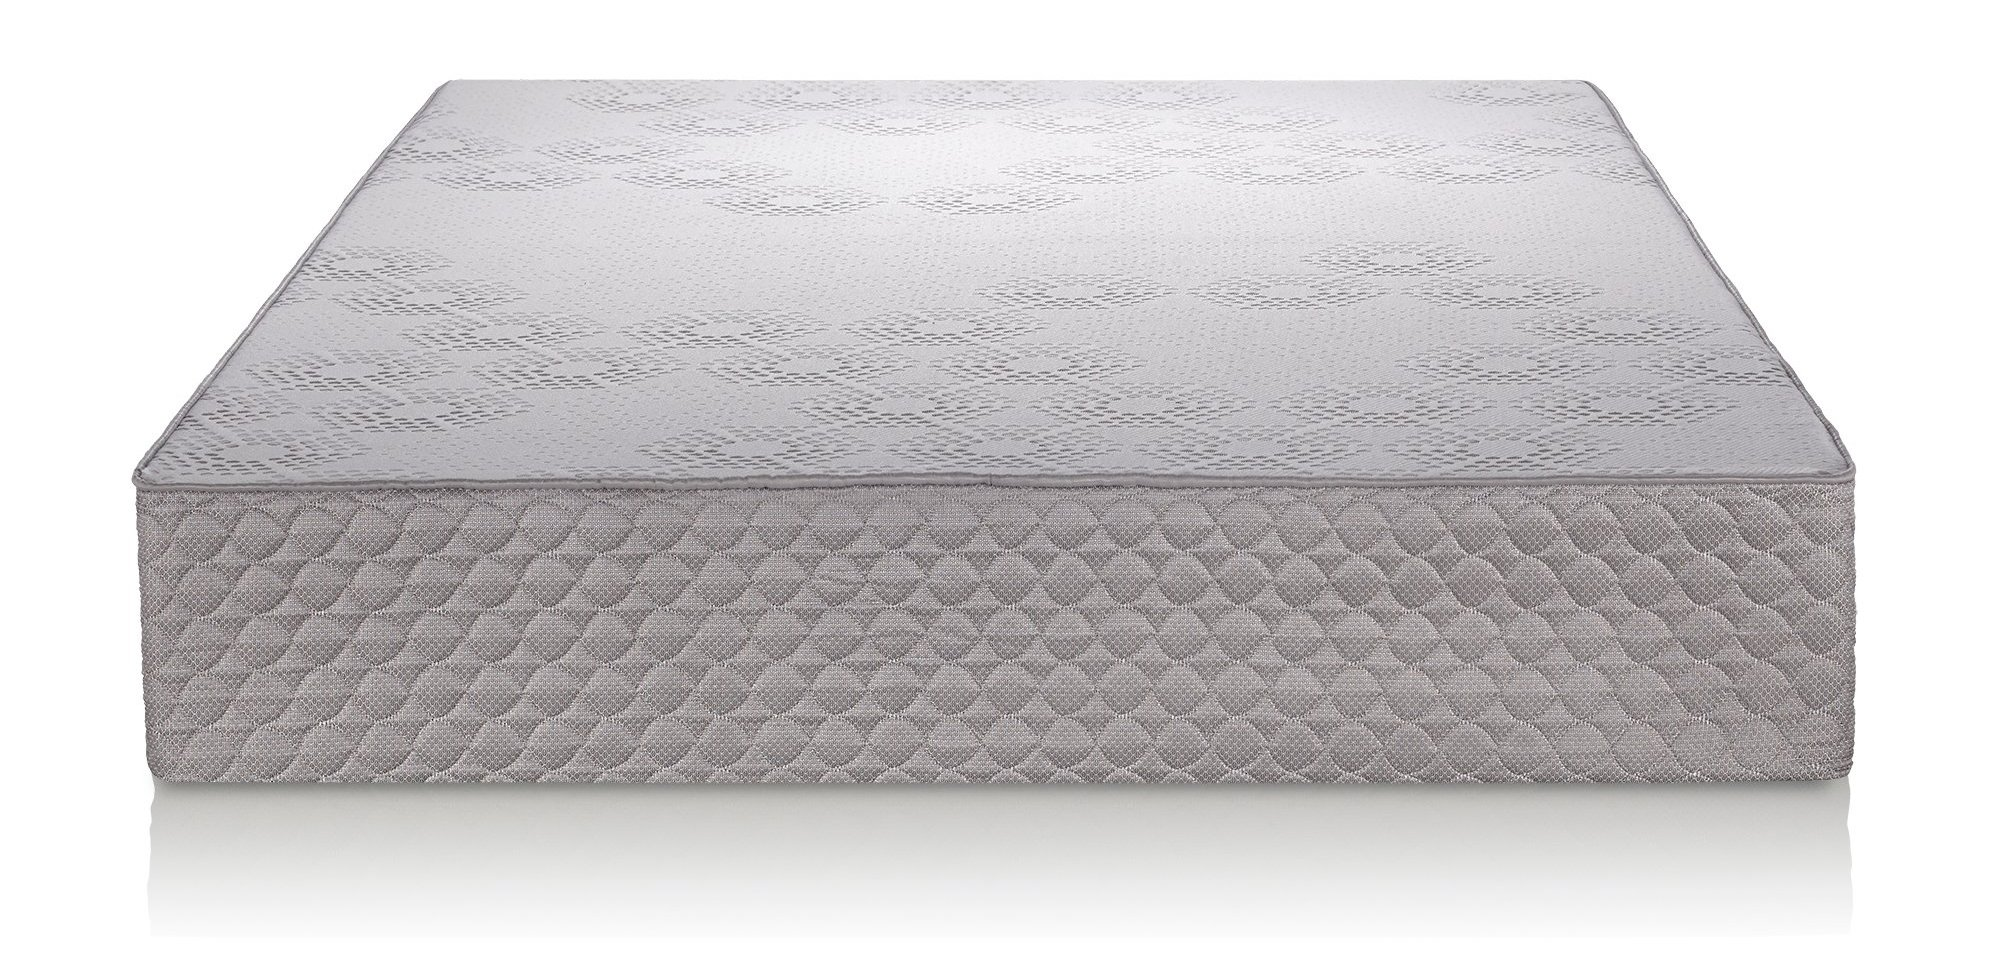 S-Bed Brentwood Home Review, Brentwood Home Mattress review